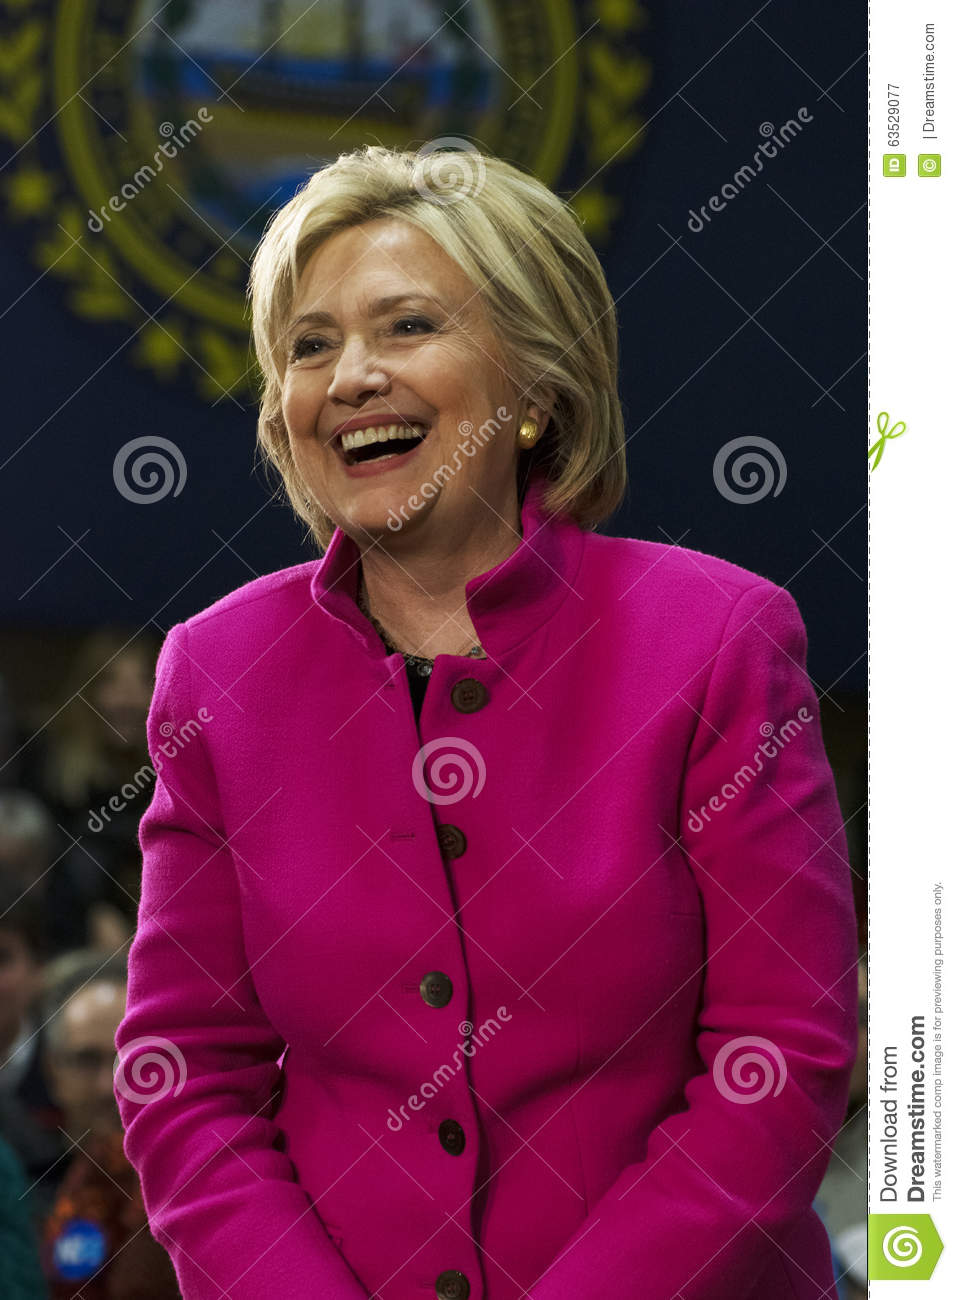 Hillary Clinton Laughing Pink Jacket